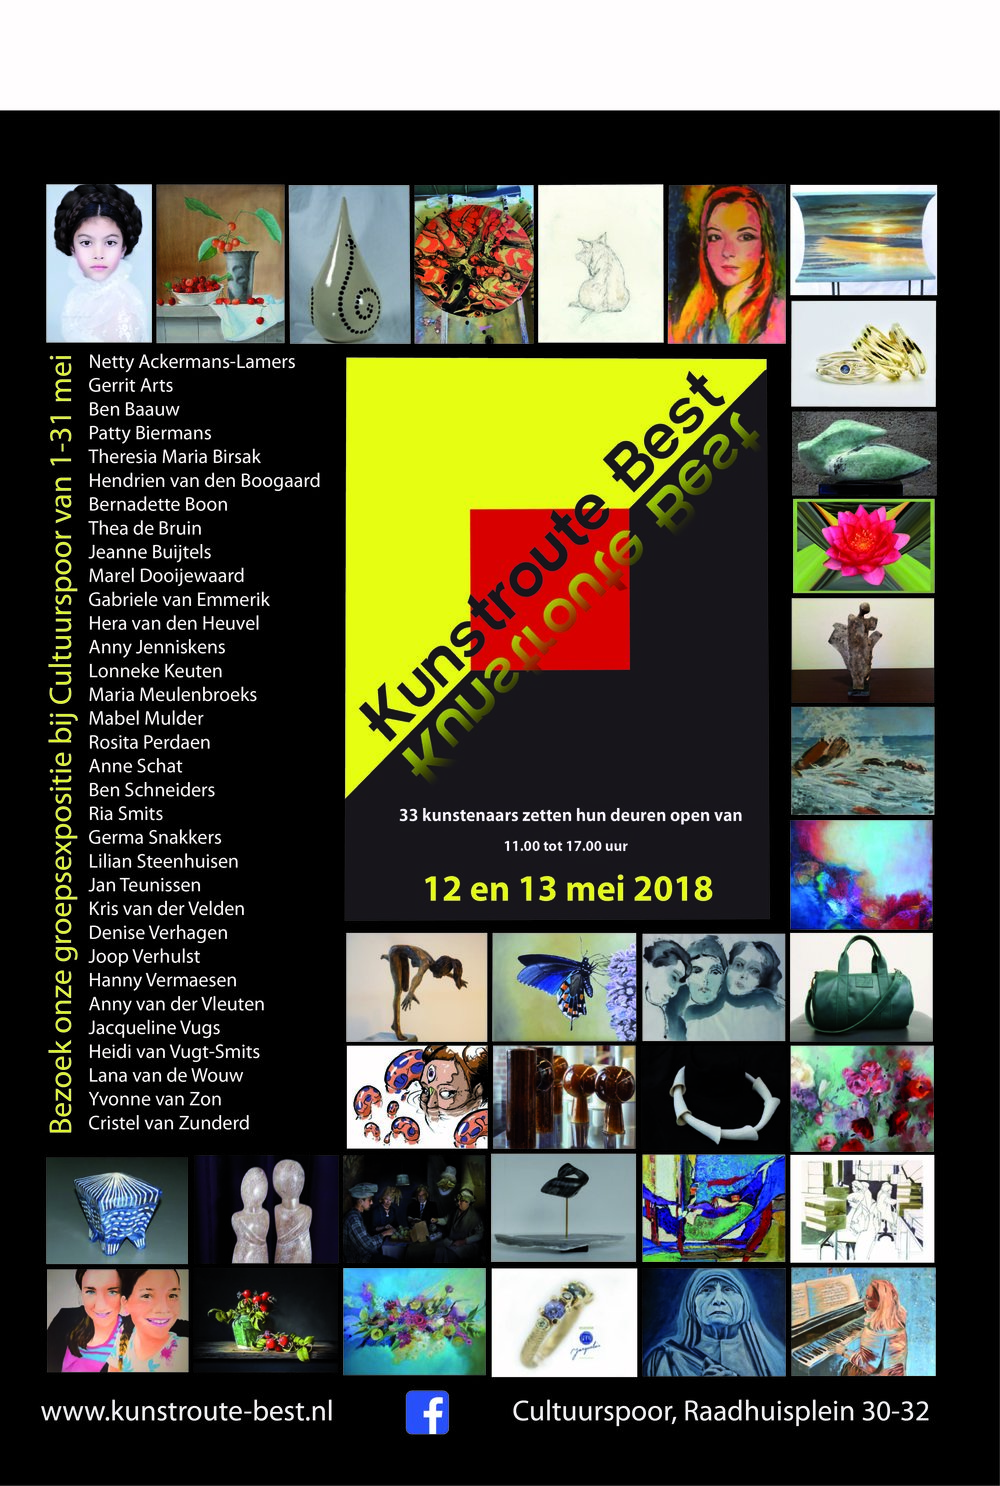 poster A3 kunstroute 2018.jpg